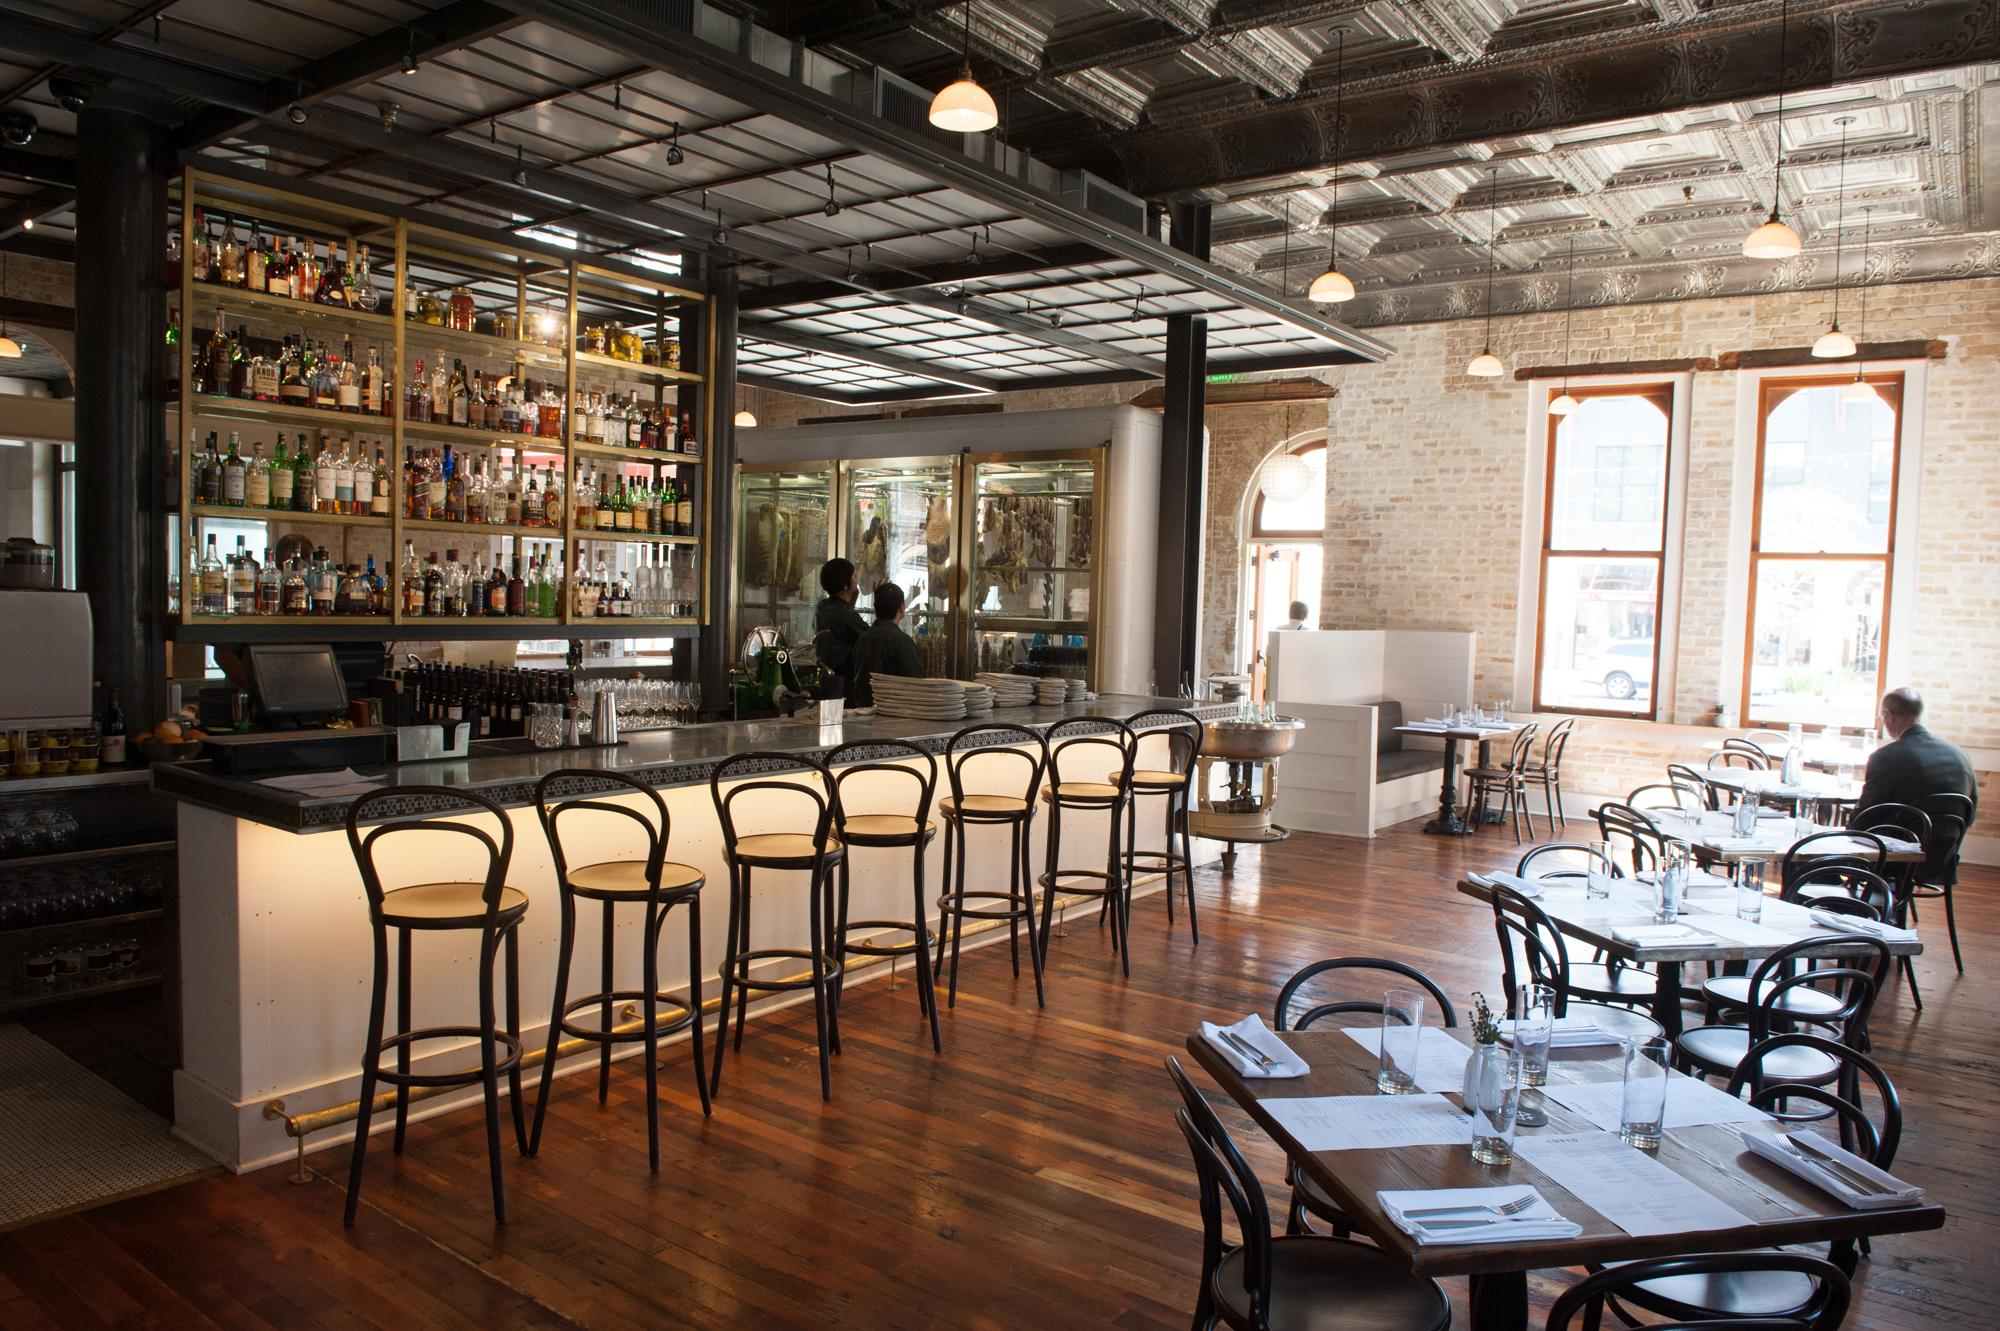 5 restaurants to check out in S.A., according to Eater - San Antonio ...